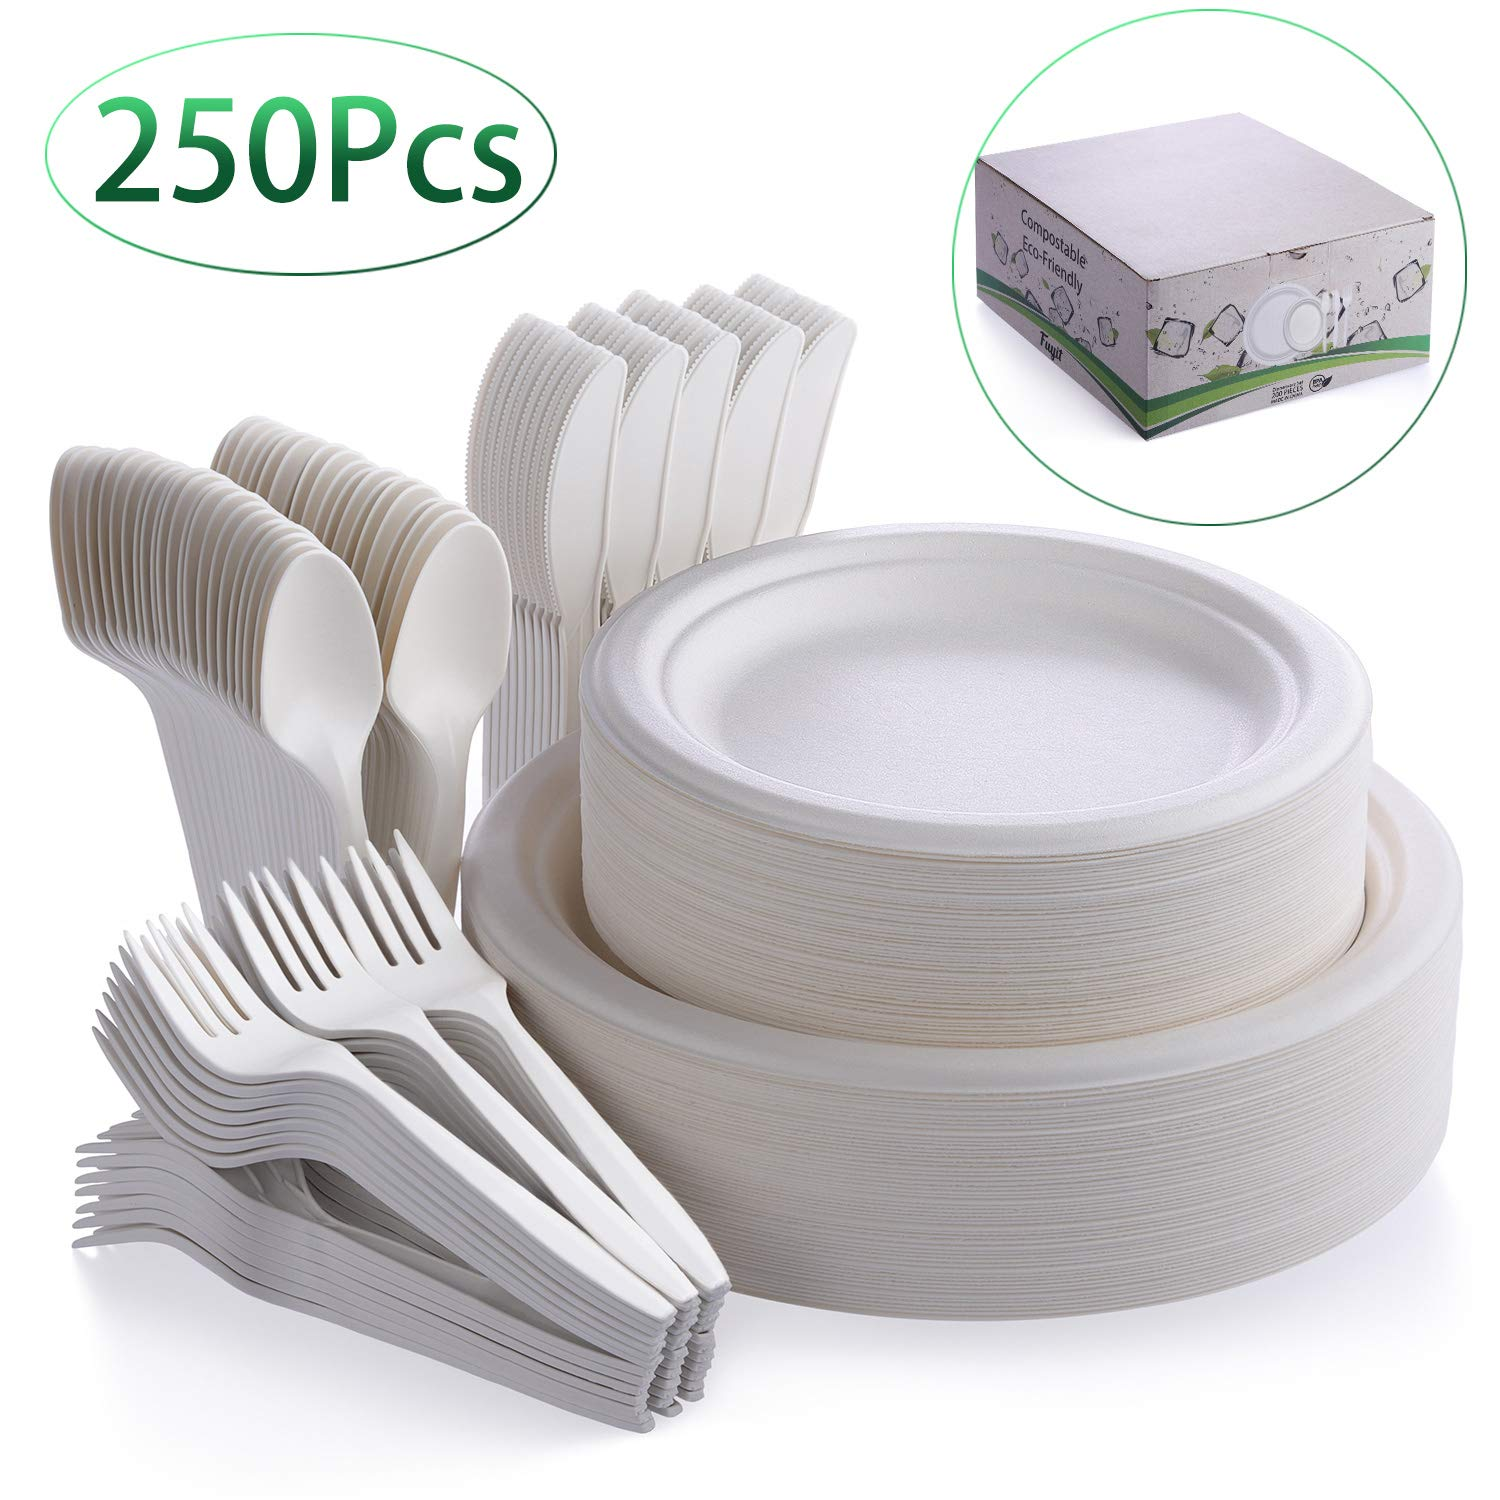 Fuyit 250Pcs Disposable Dinnerware Set, Compostable Sugarcane Cutlery Eco-Friendly Tableware Includes Biodegradable Paper Plates, Forks, Knives and Spoons Combo for Party, Camping, Picnic (White)